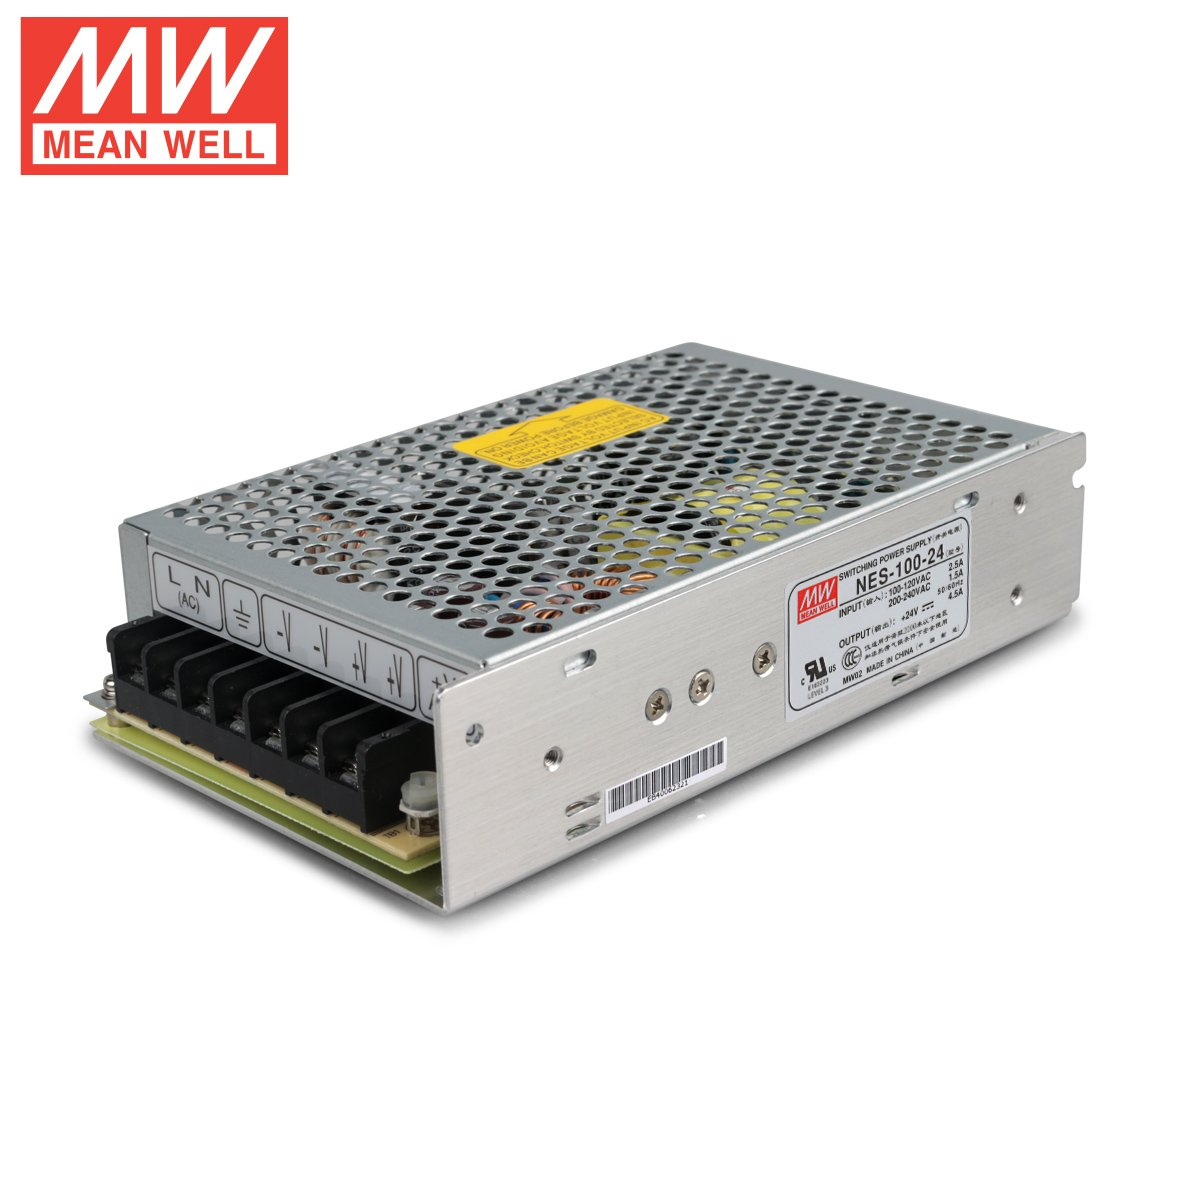 NES-100-24 100W meanwell authorized general agent Taiwan meanwell switching power supply 24V4.5A